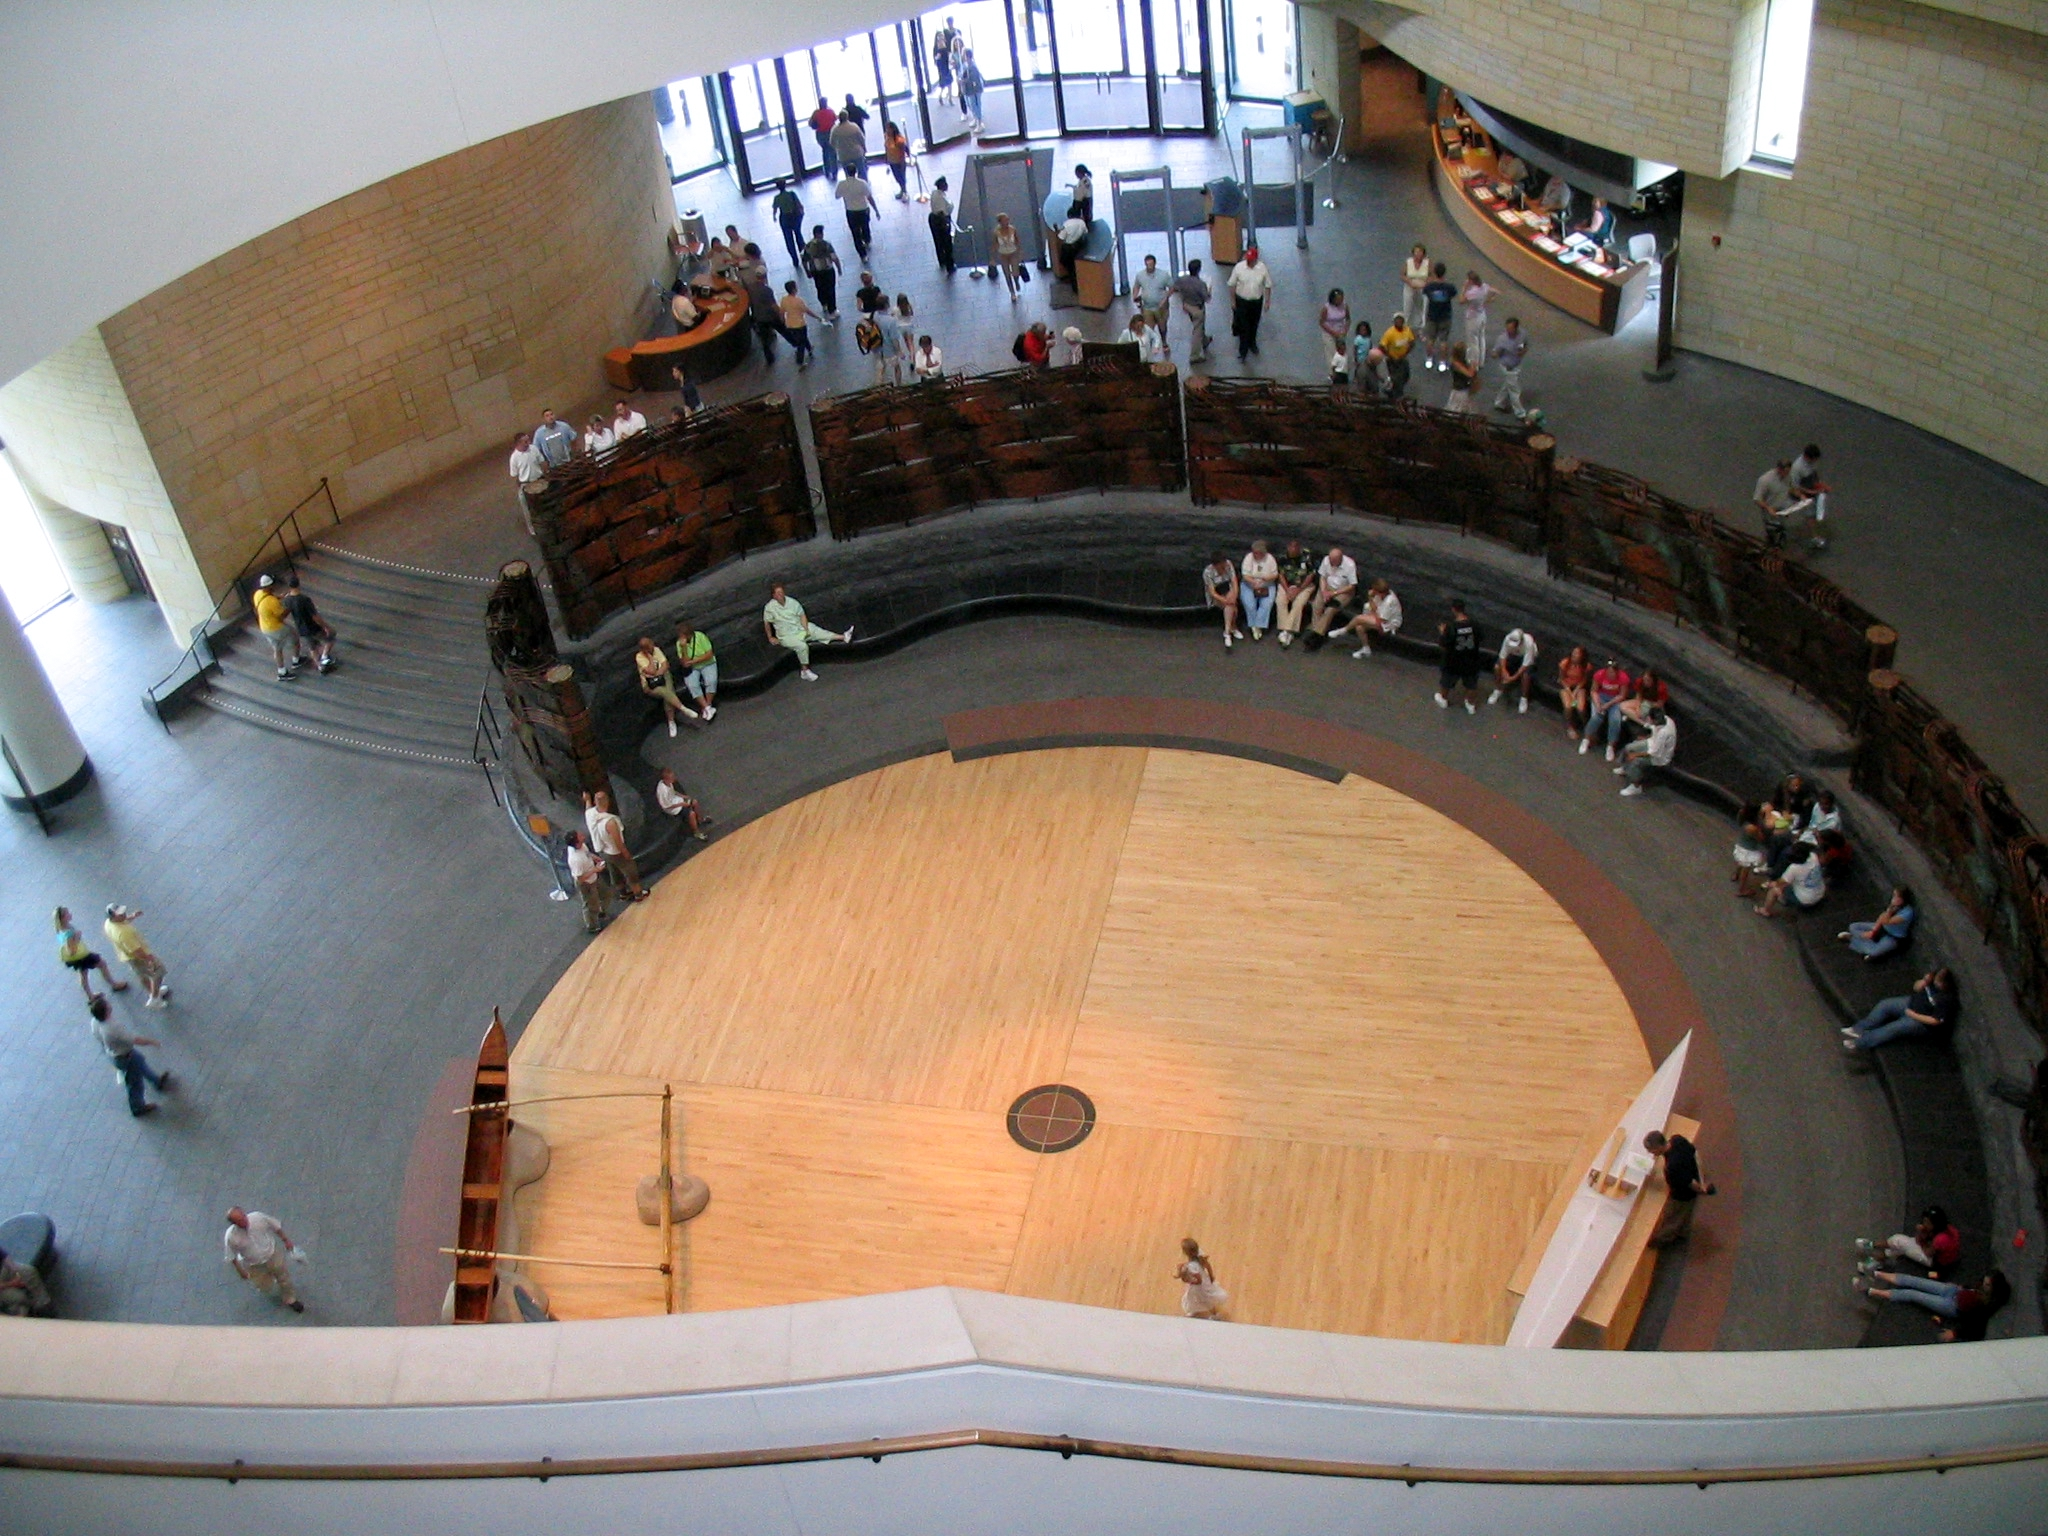 File:Interior of the National Museum of the American Indian.jpg ...